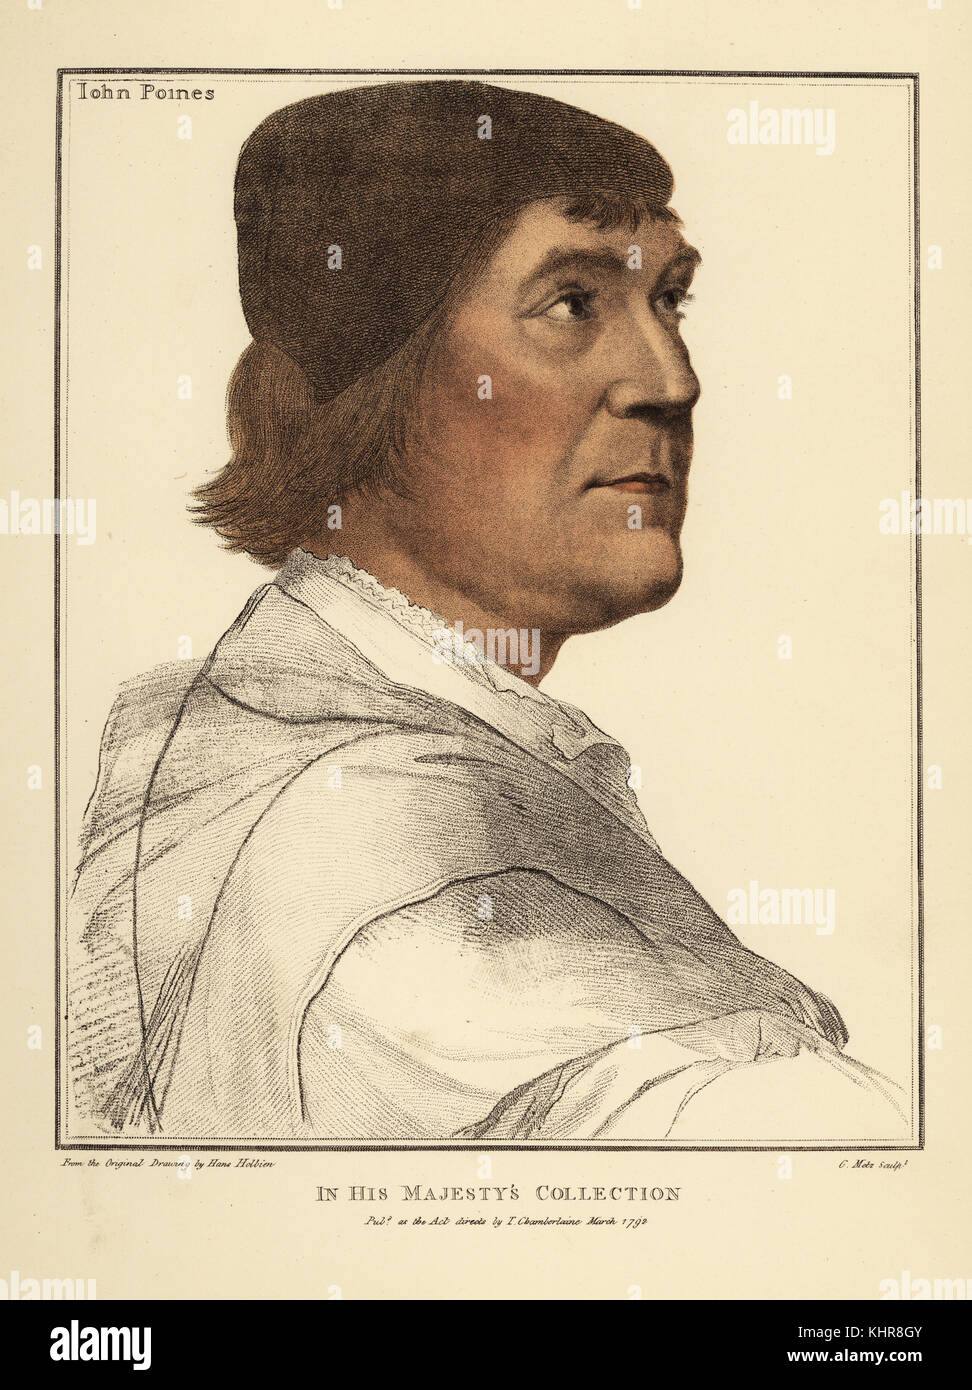 John Poines or John Poyntz (ca. 1485 – 1544). English courtier and politician, Member of Parliament for Devizes. - Stock Image